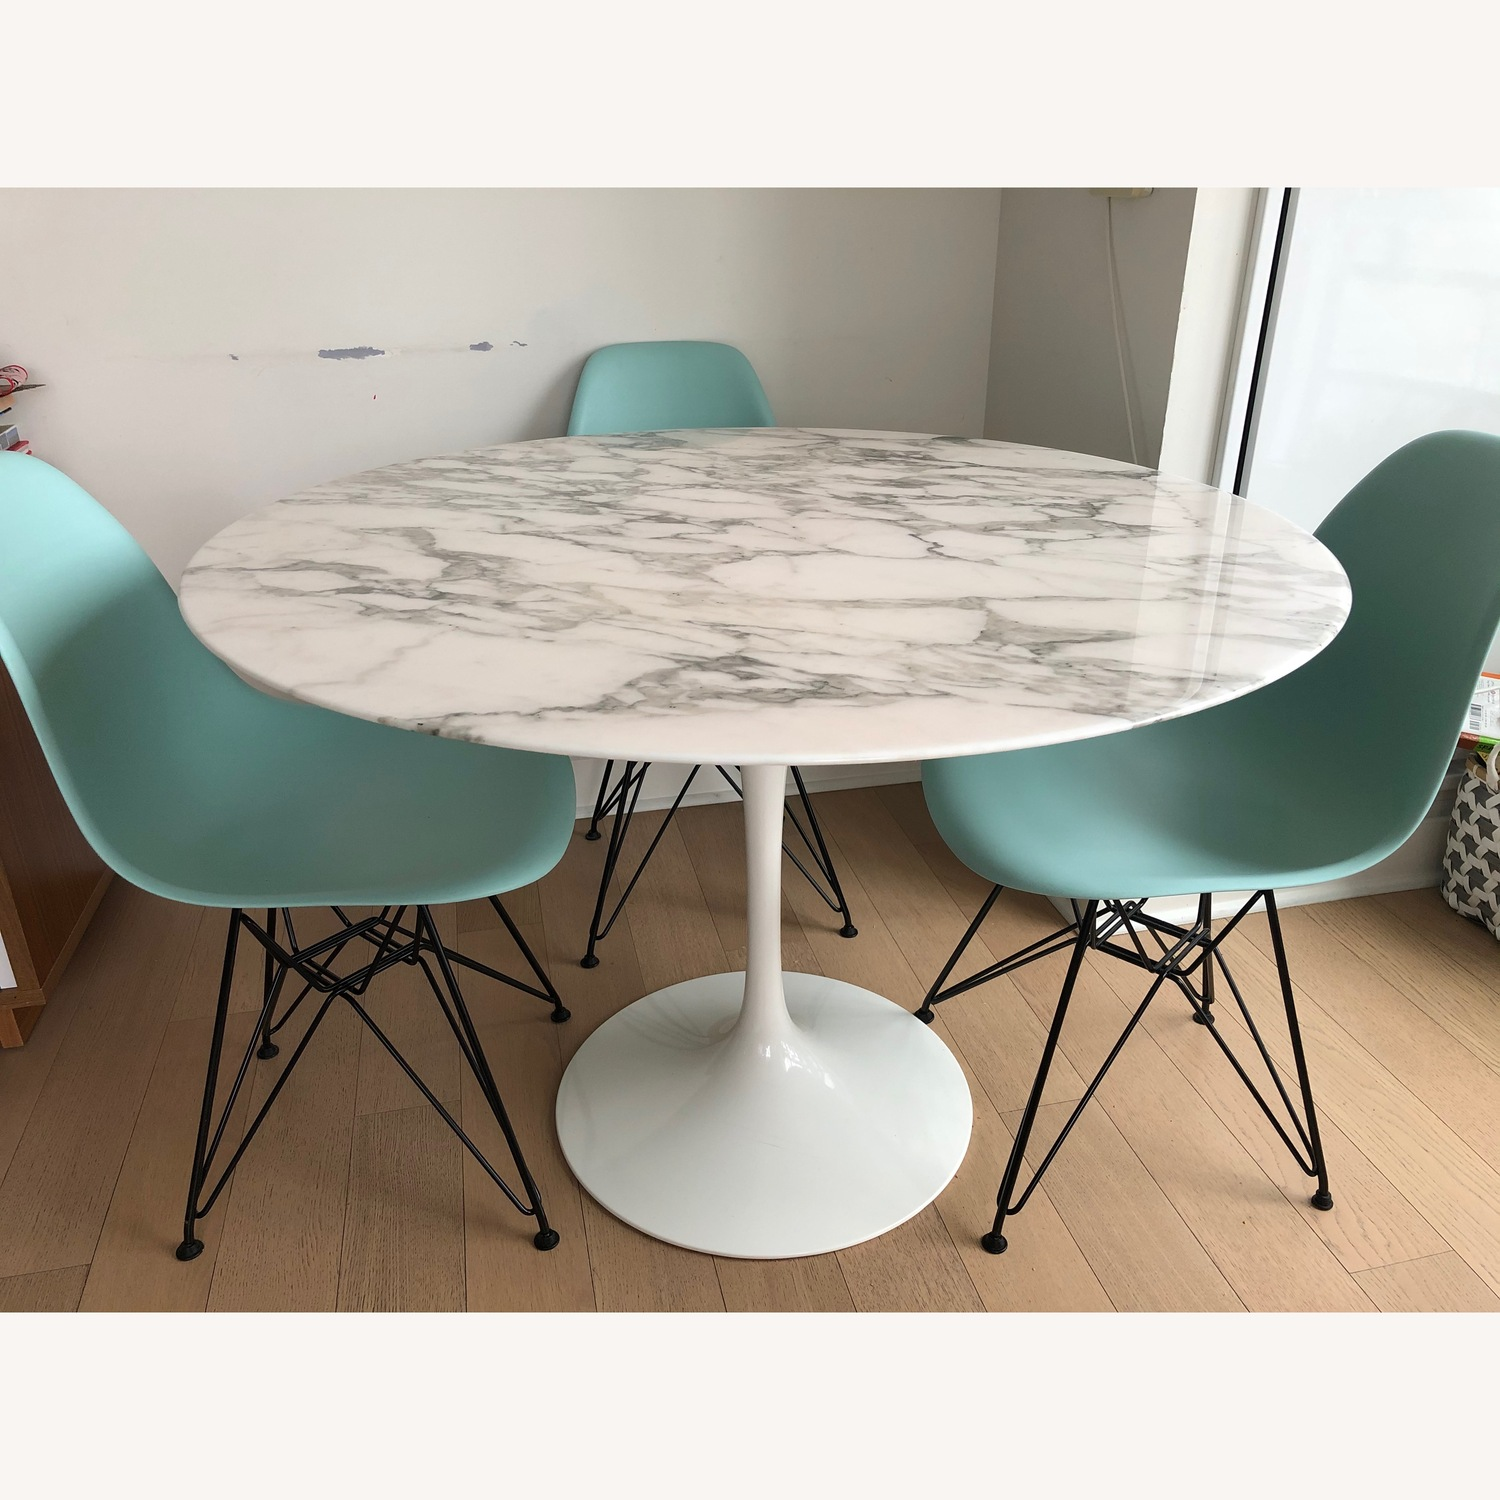 White Marble - Saarinen Round Dining Table - image-1